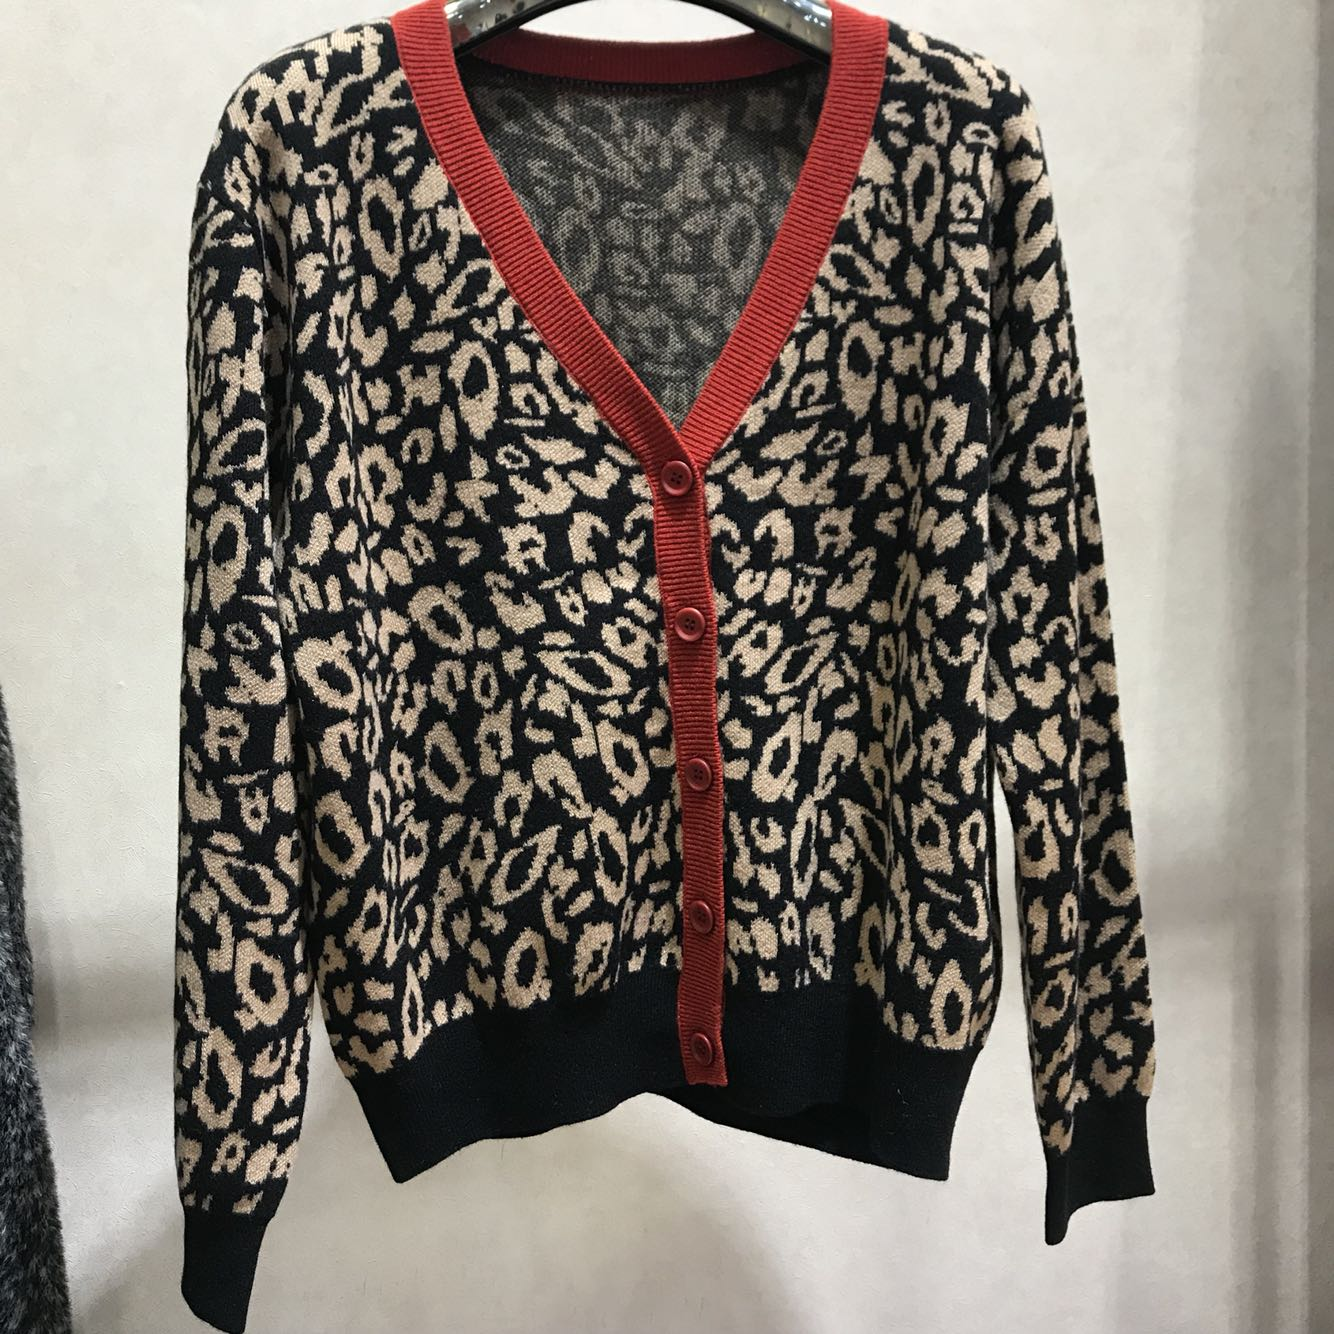 2020 spring new V-neck contrast long sleeve single breasted leopard wool knitted cardigan loose coat young woman